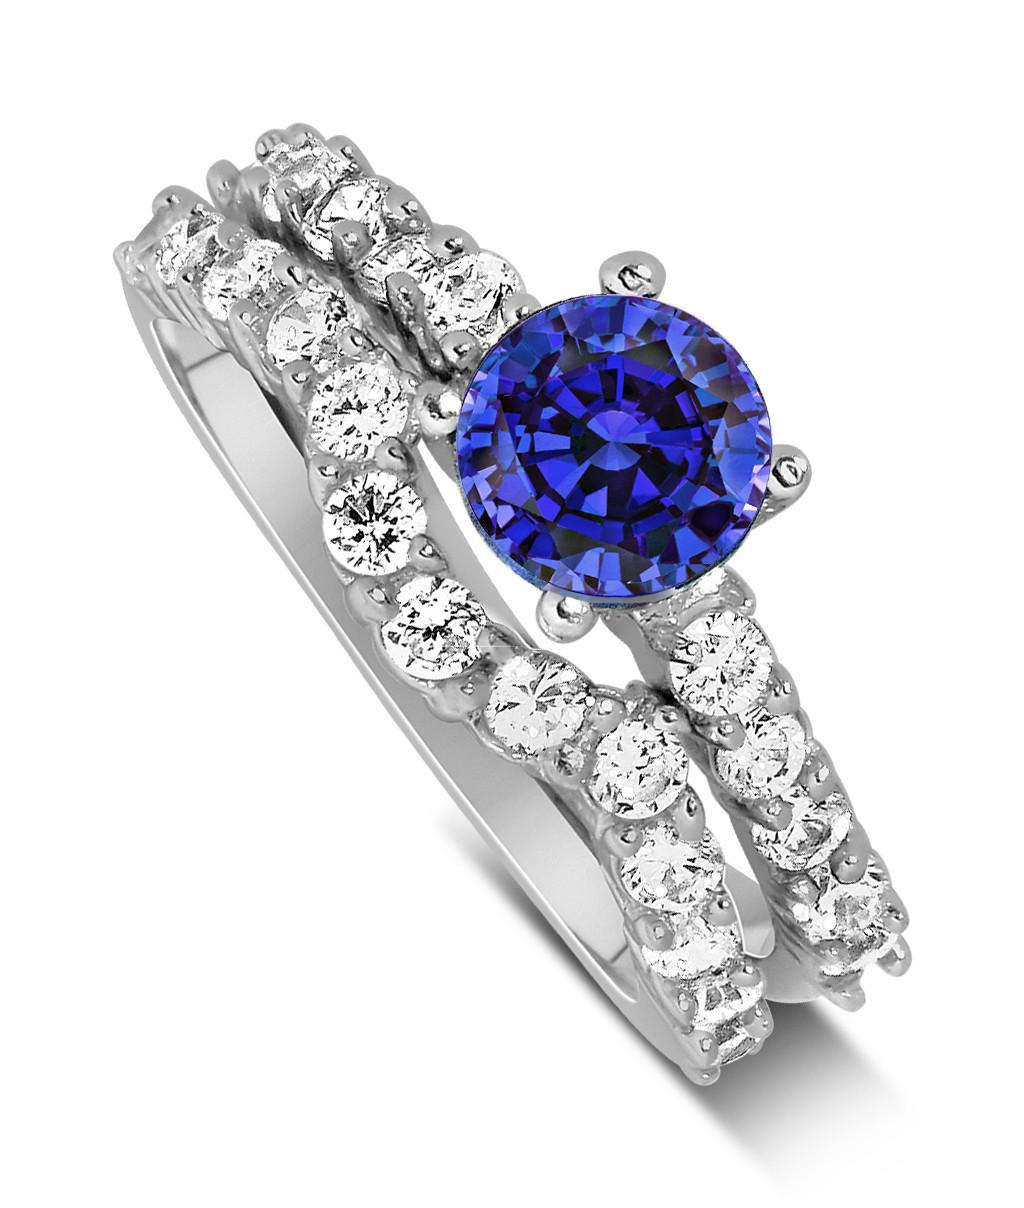 2 carat vintage round cut blue sapphire and diamond for Sapphire engagement ring and wedding band set